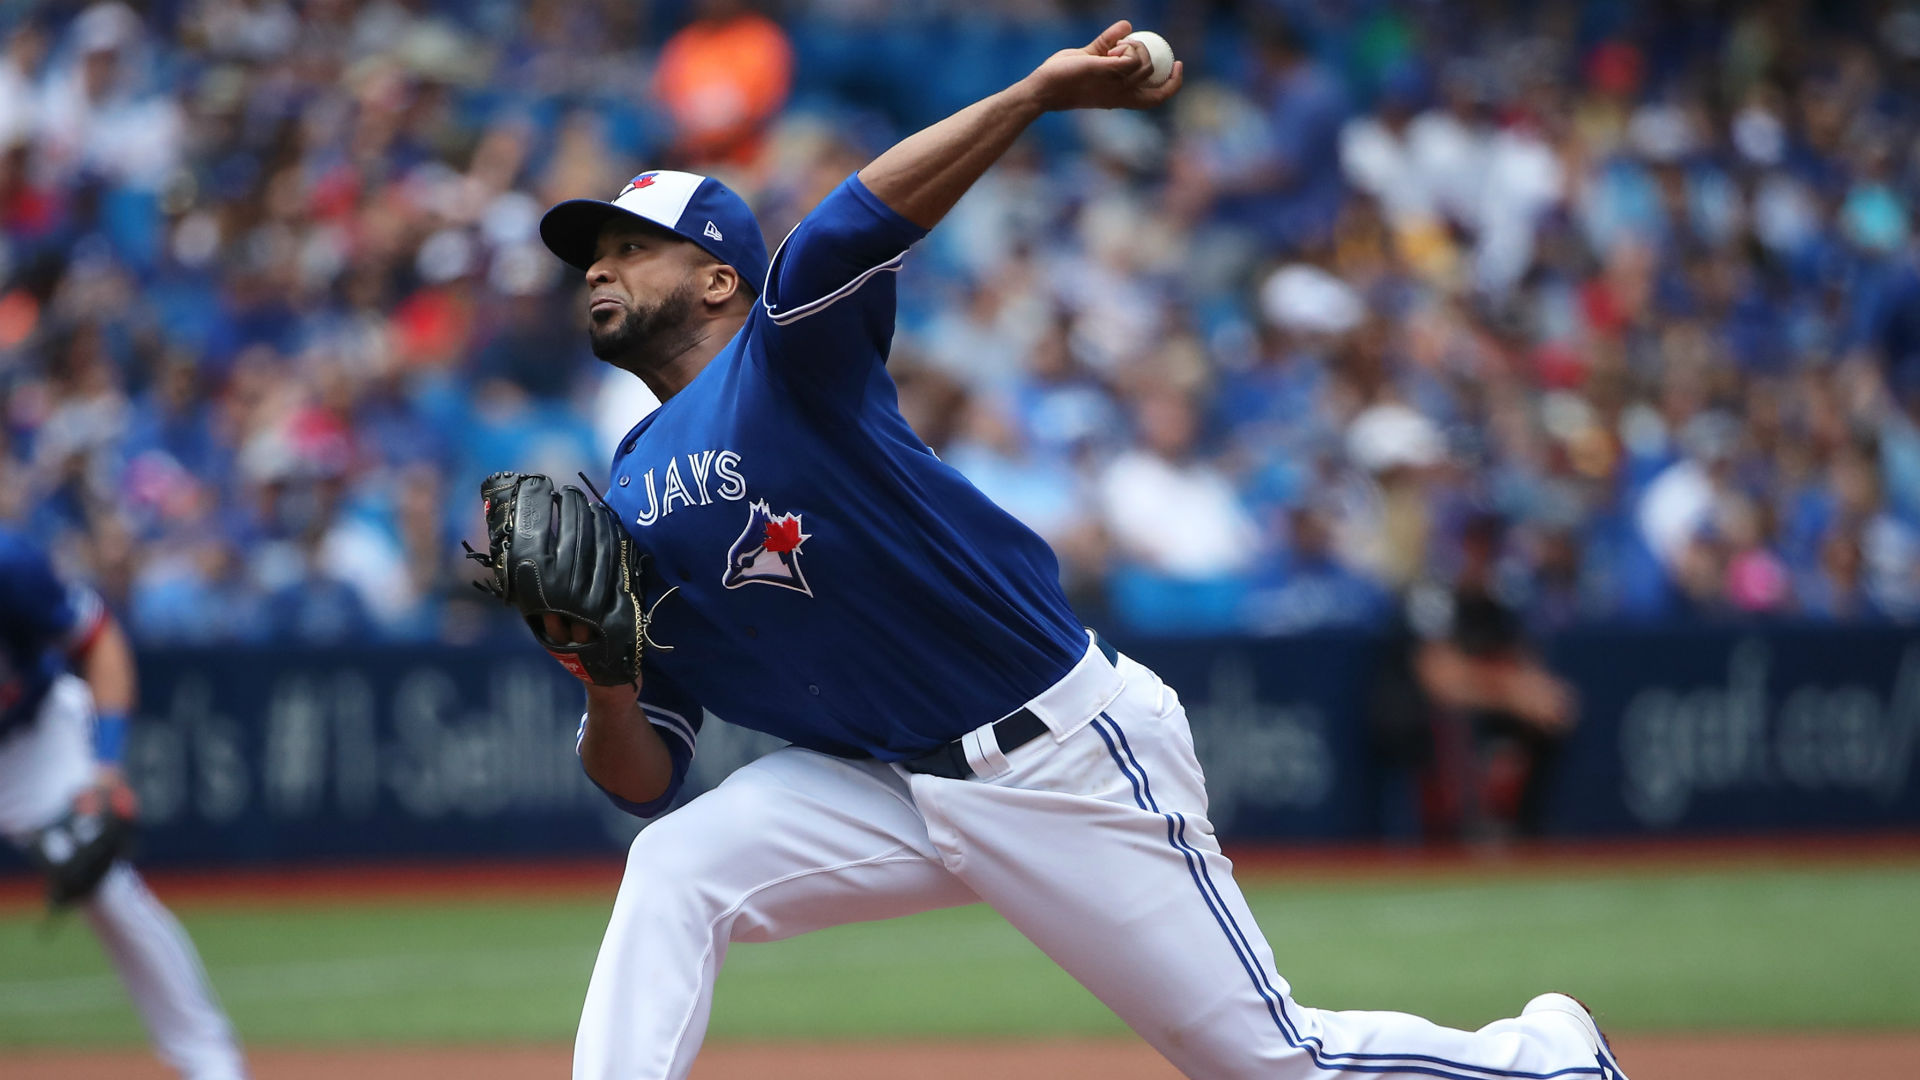 Astros Trade Aoki, Prospect To Jays For Liriano